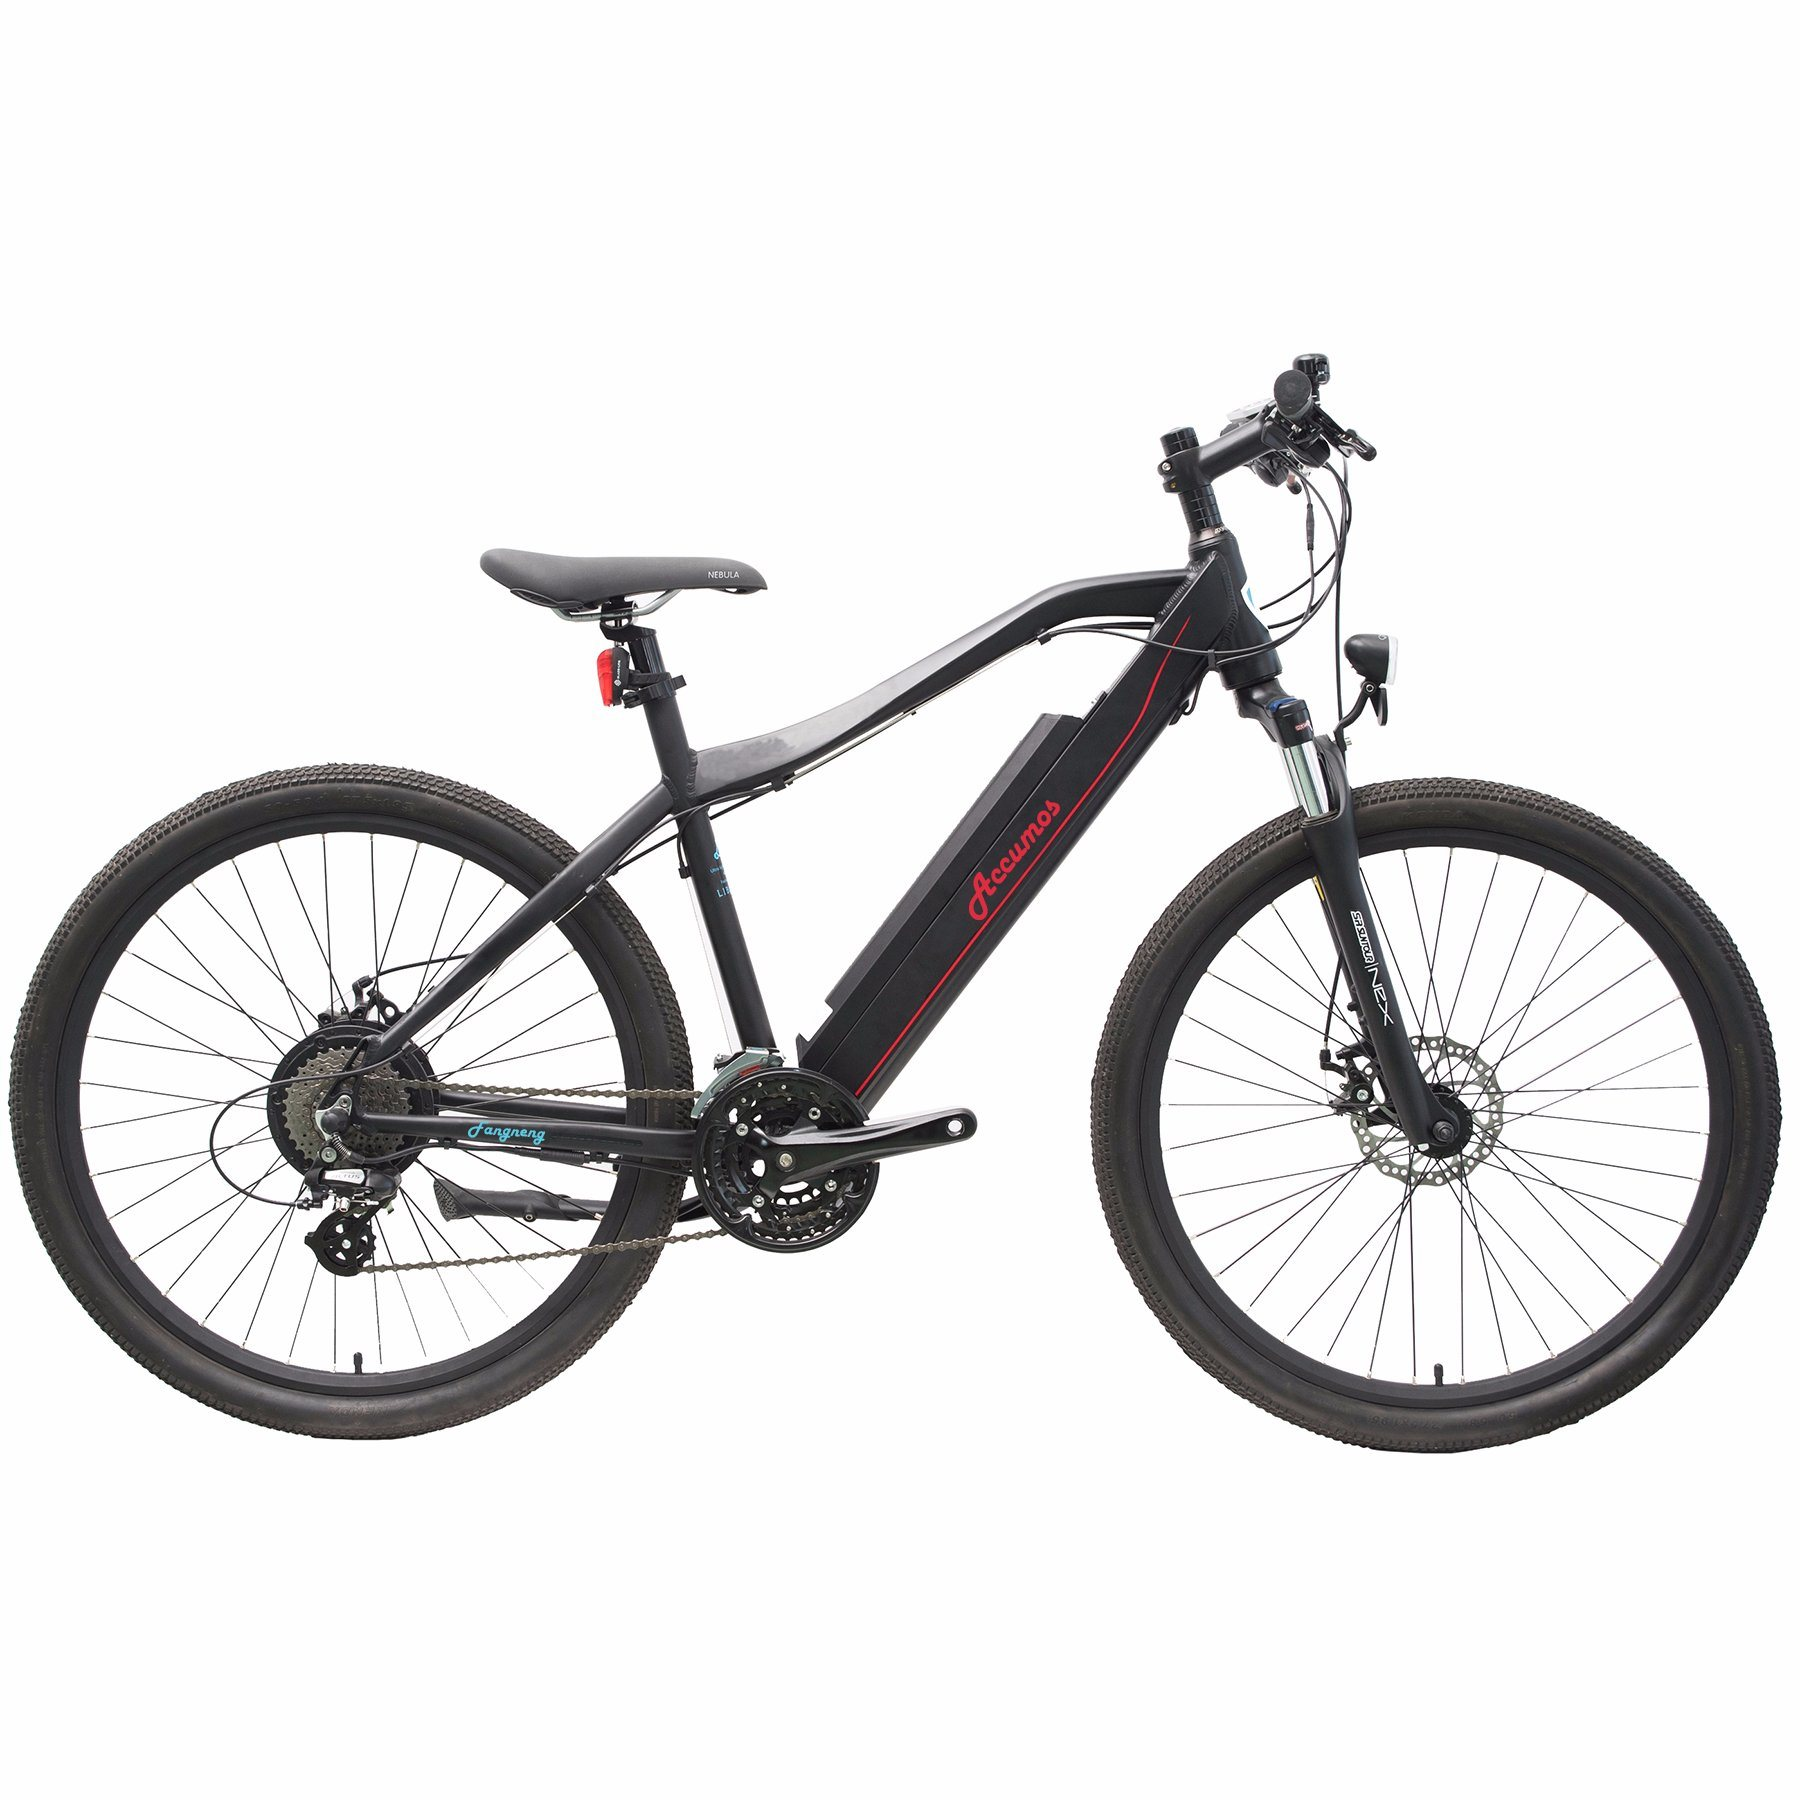 Bicycle 26inch Electric Mountain Bicylce 48vlithium Battery 500w Motor Smart Lcd Assist Bike Pas Ebike Aluminum Mountain Bike 50km Range Elegant In Smell